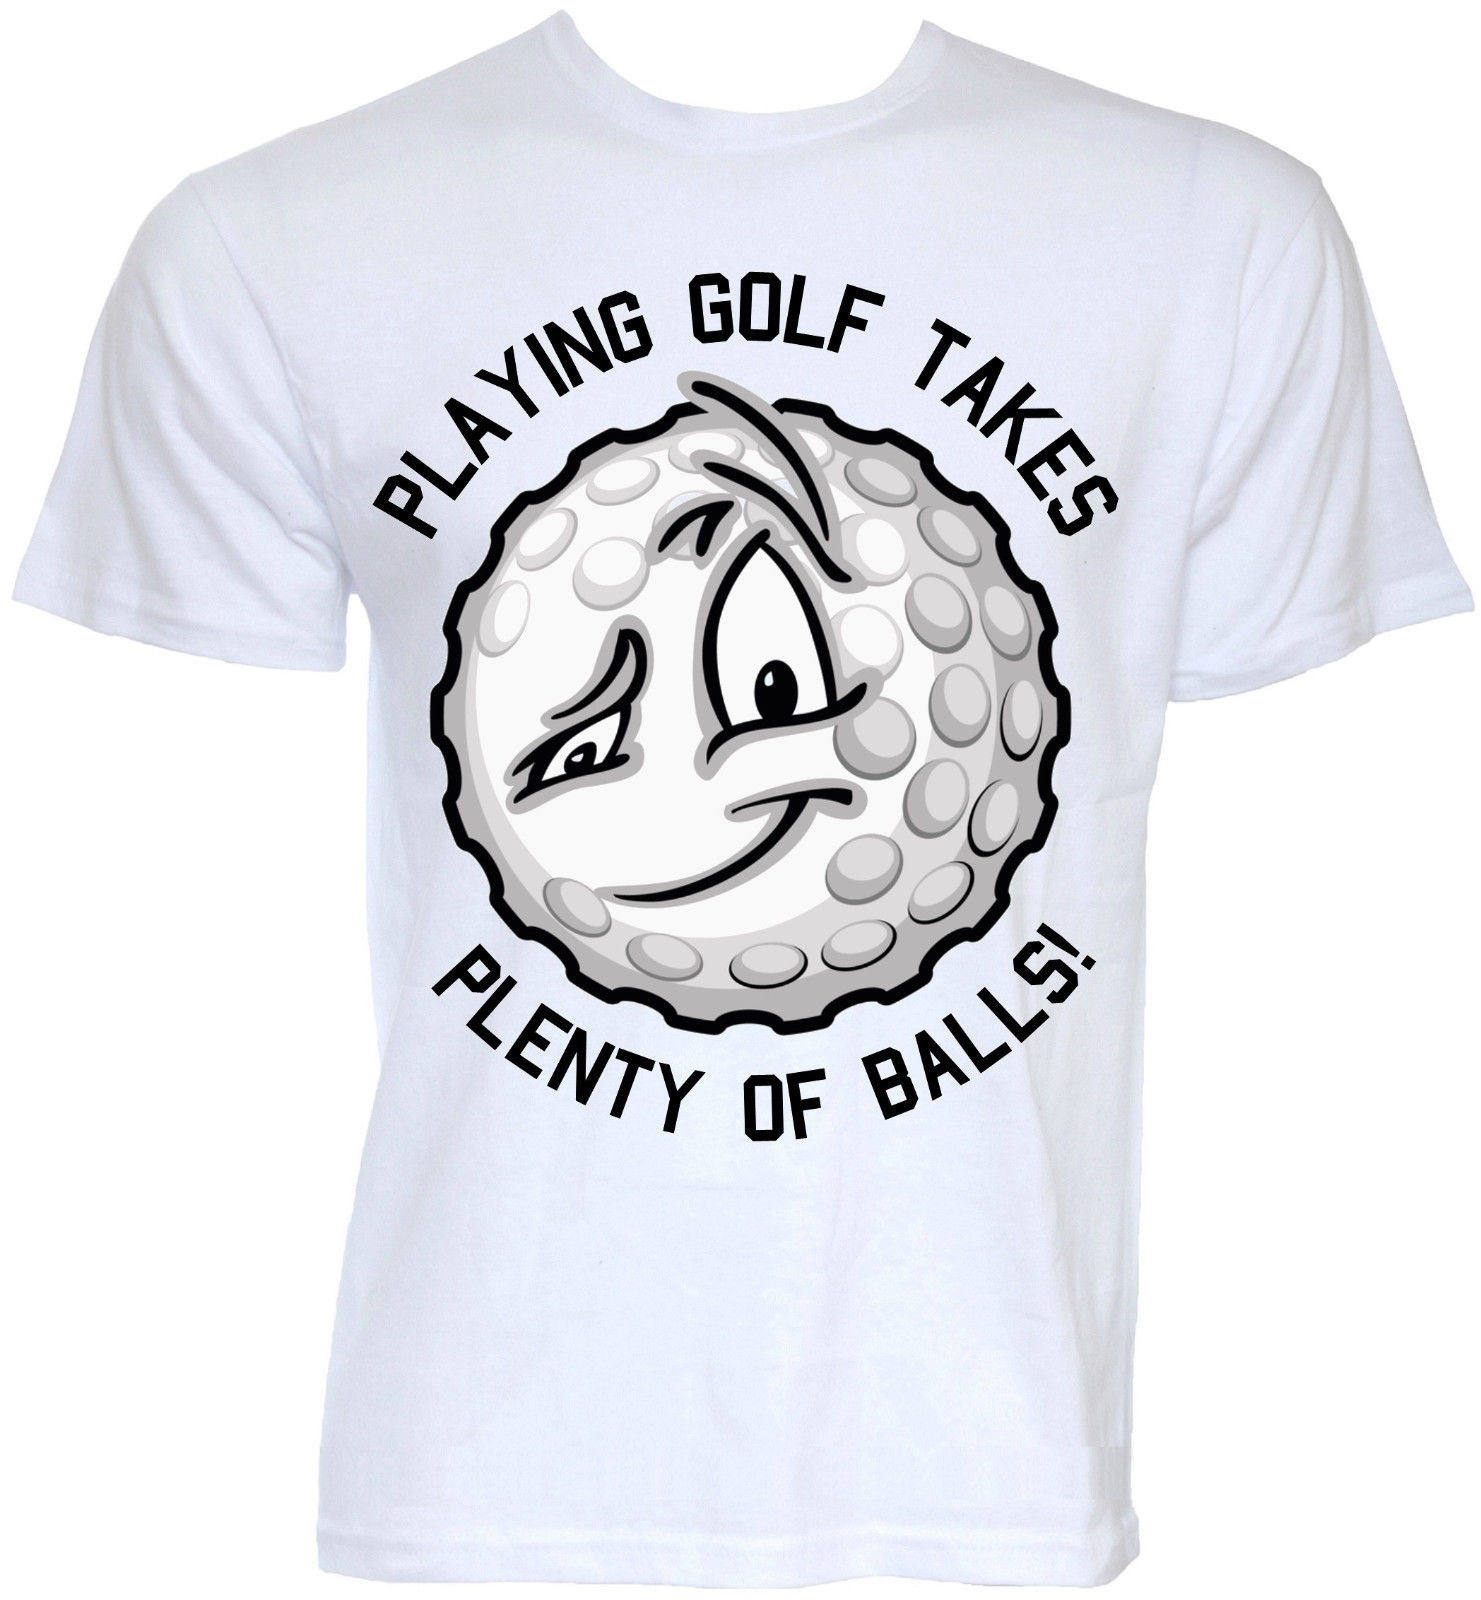 MENS FUNNY NOVELTY GOLFERBALL SLOGAN GOLFER GOLFING JOKE RUDE T-SHIRTS FUN GIFTS Short Sleeve Round Neck T Shirt Promotion